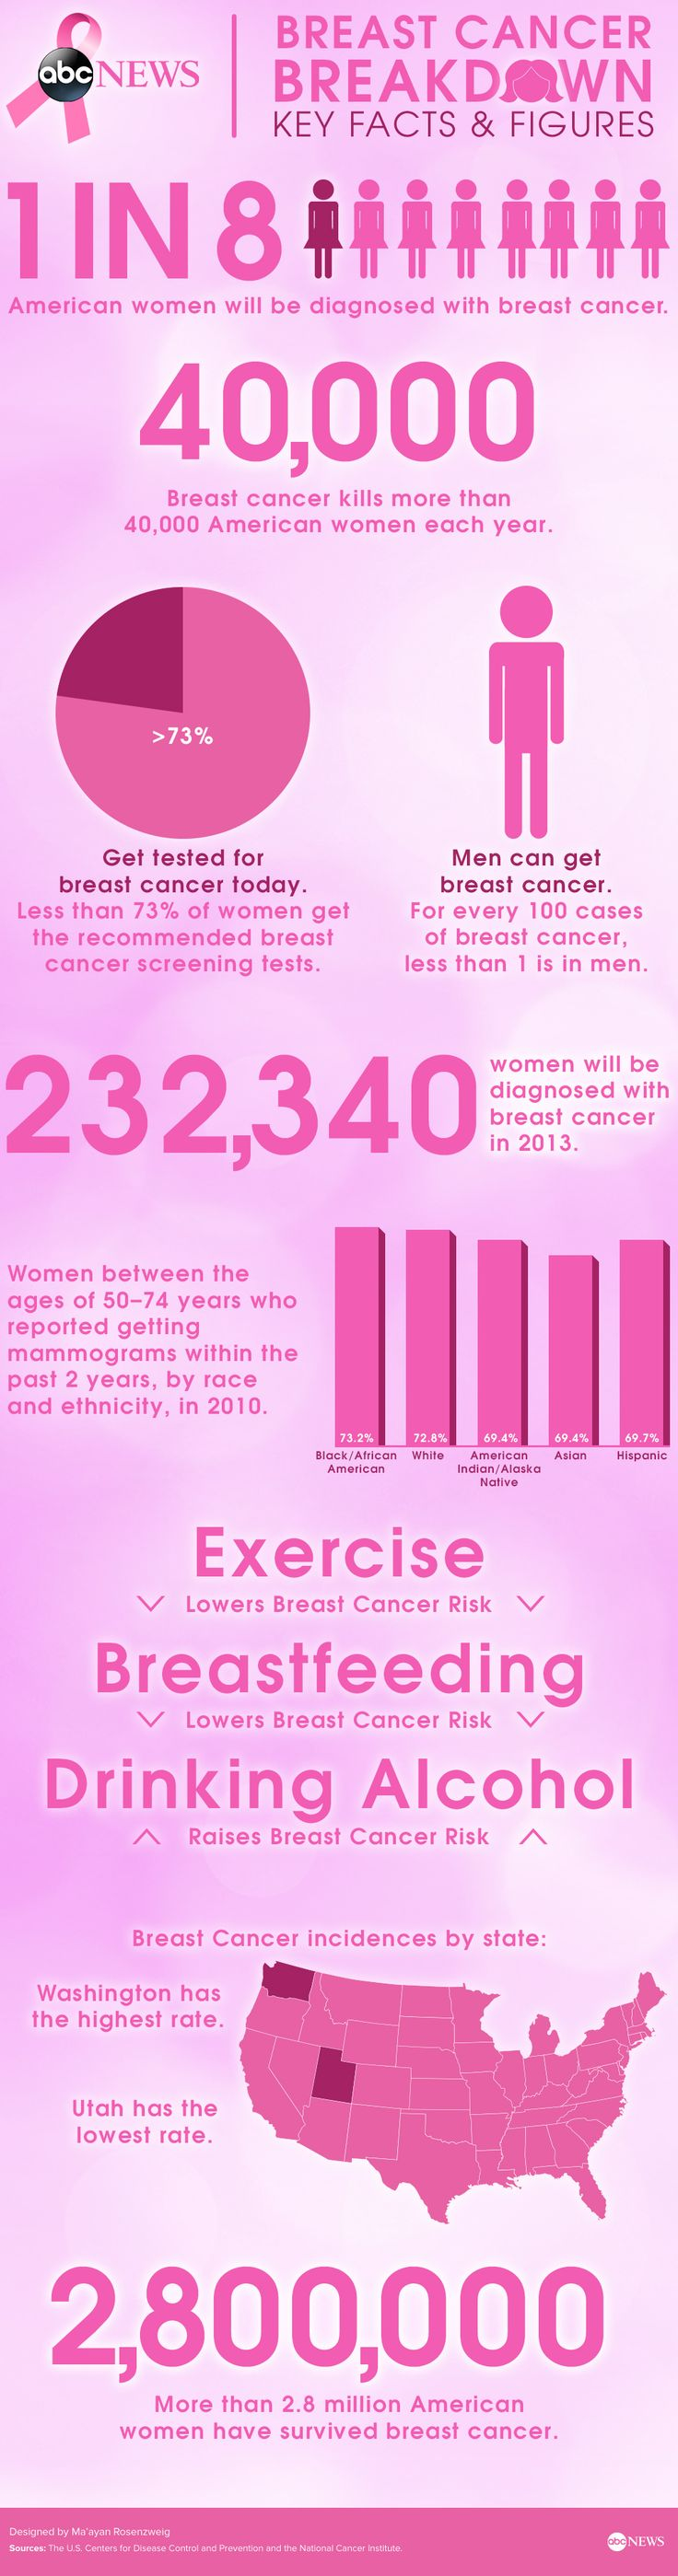 Breast Cancer Breakdown: Key Facts & Figures #breastcancer